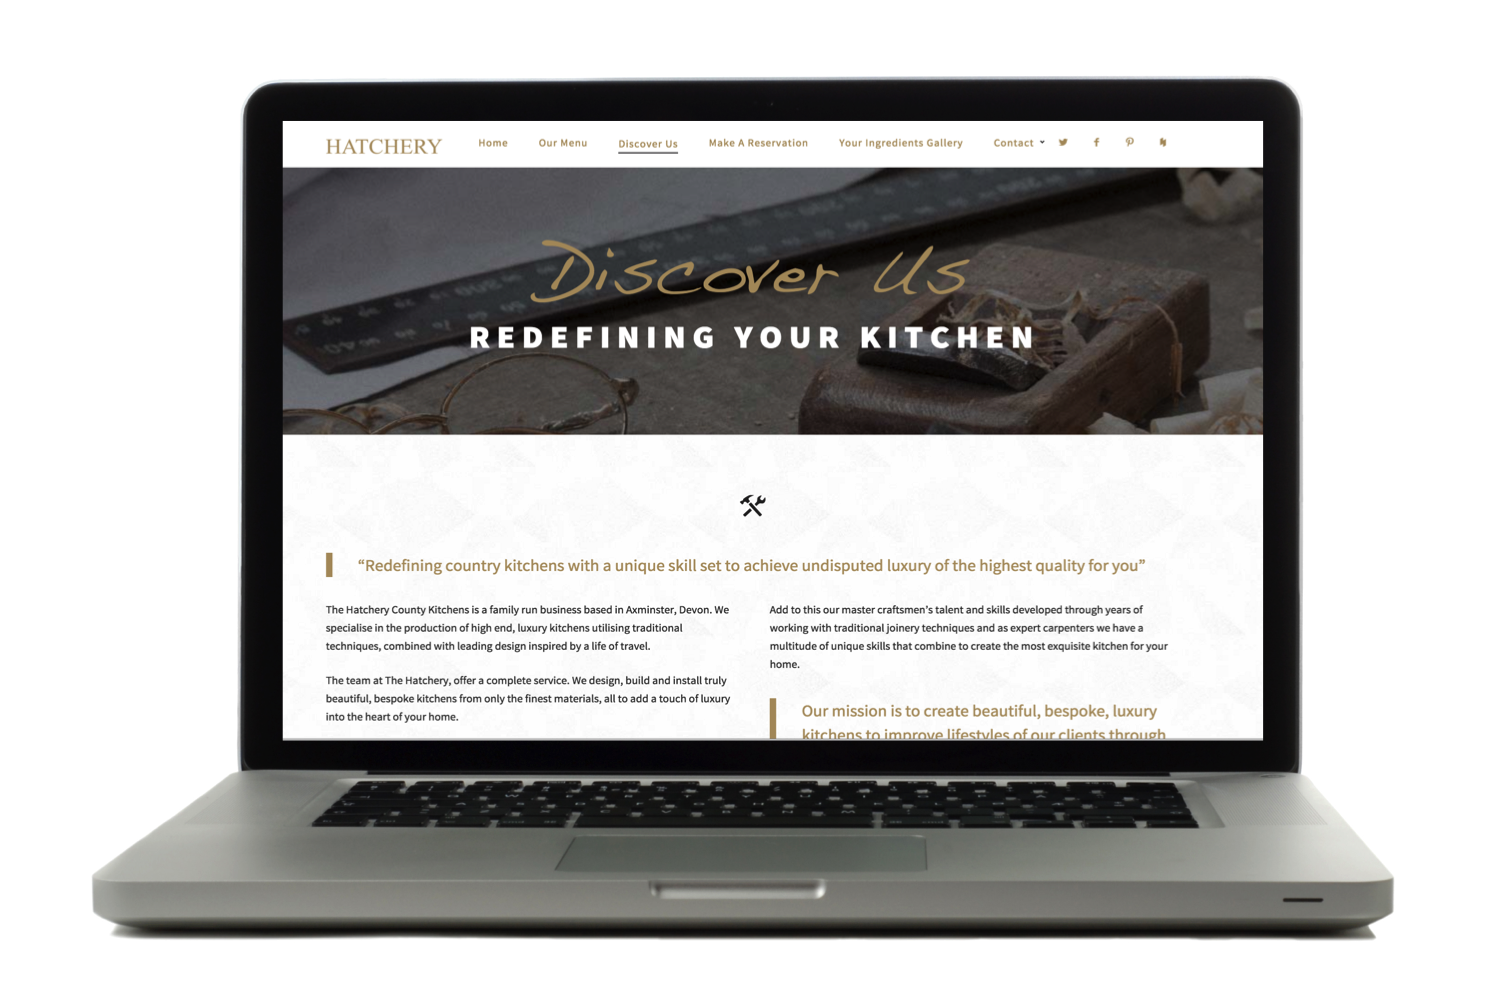 The Hatchery Country Kitchens web content